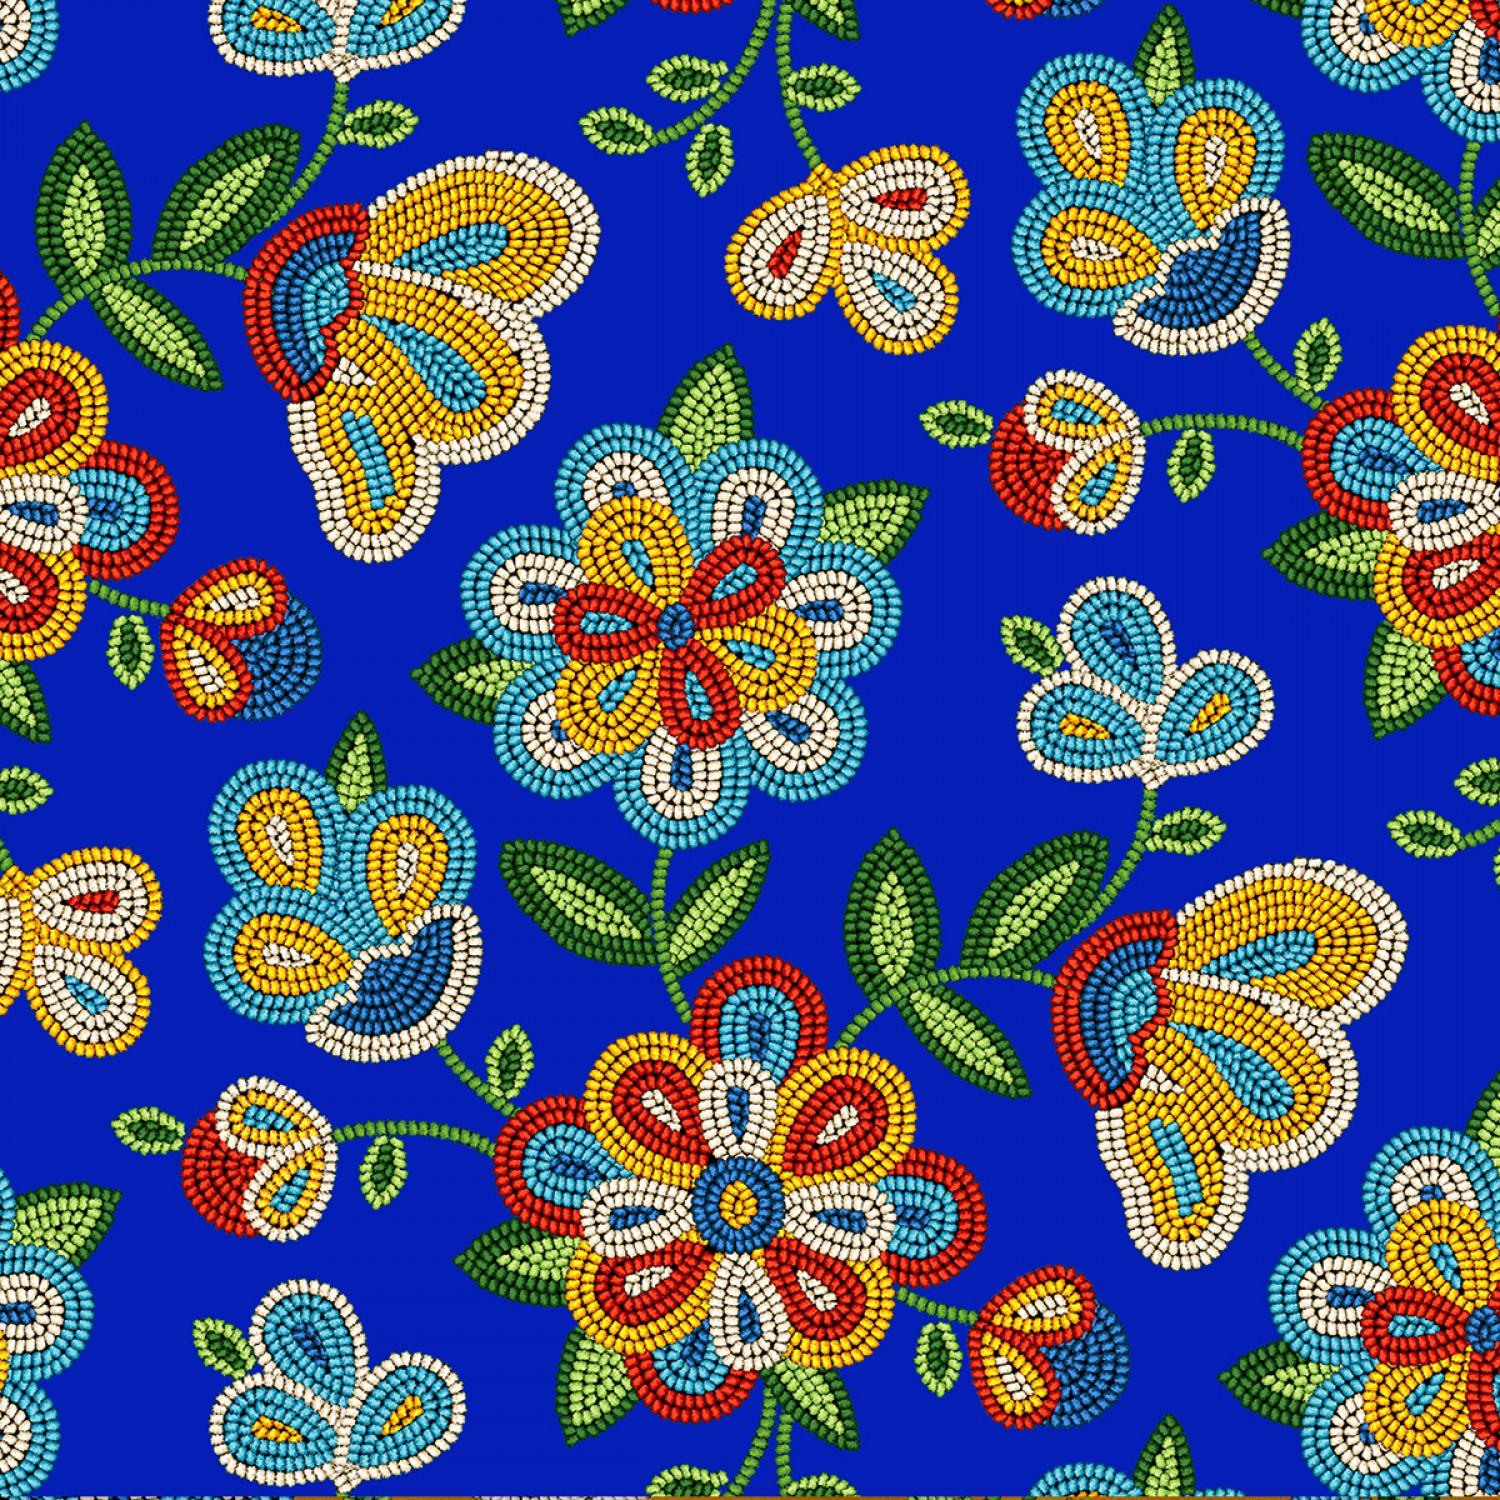 Beaded Floral Royal 100% Cotton - Price Per Yard